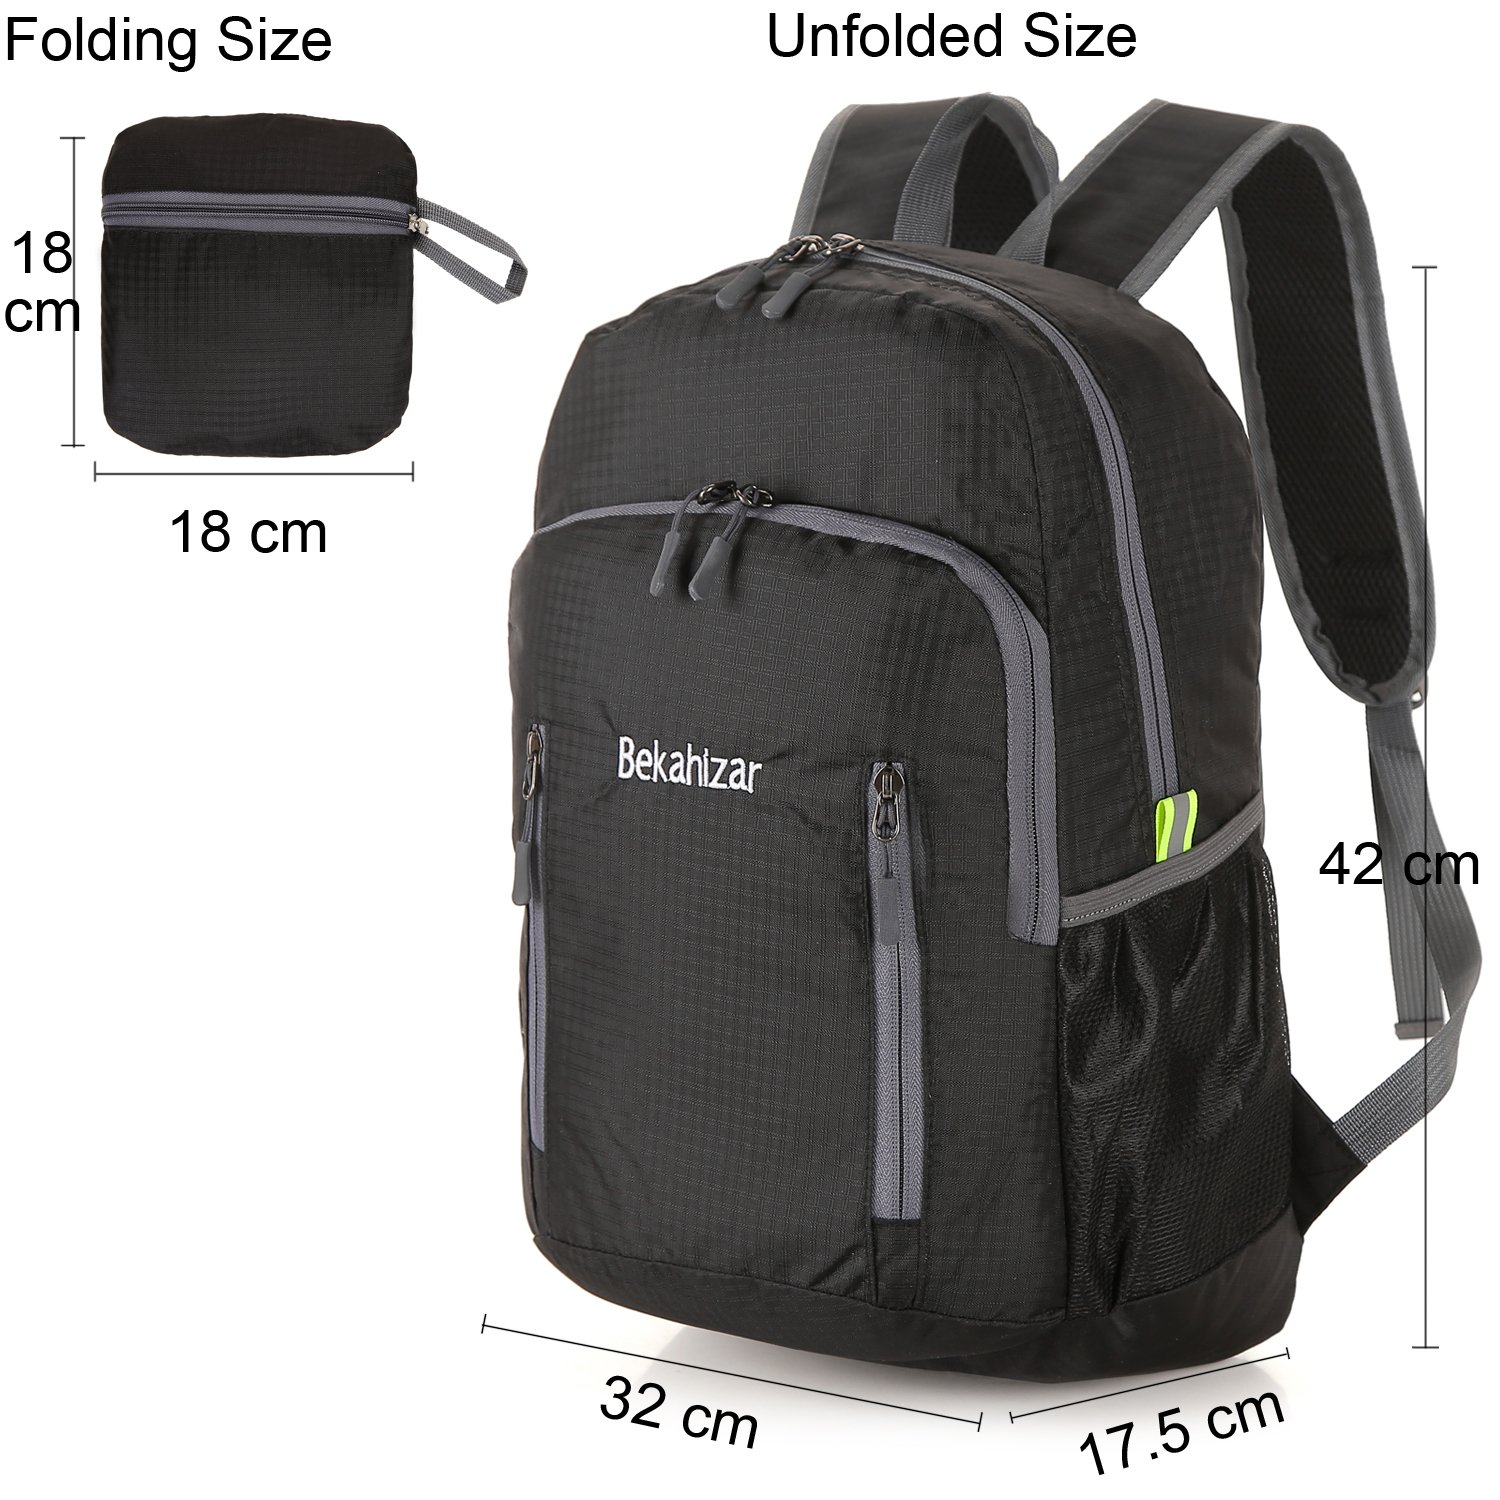 0d1b508623c9 Bekahizar 20L Ultra Lightweight Backpack Foldable Water Resistant Camping  Hiking Outdoor Backpack Daypack Small Rucksack for Men Women Outdoor Hiking  ...